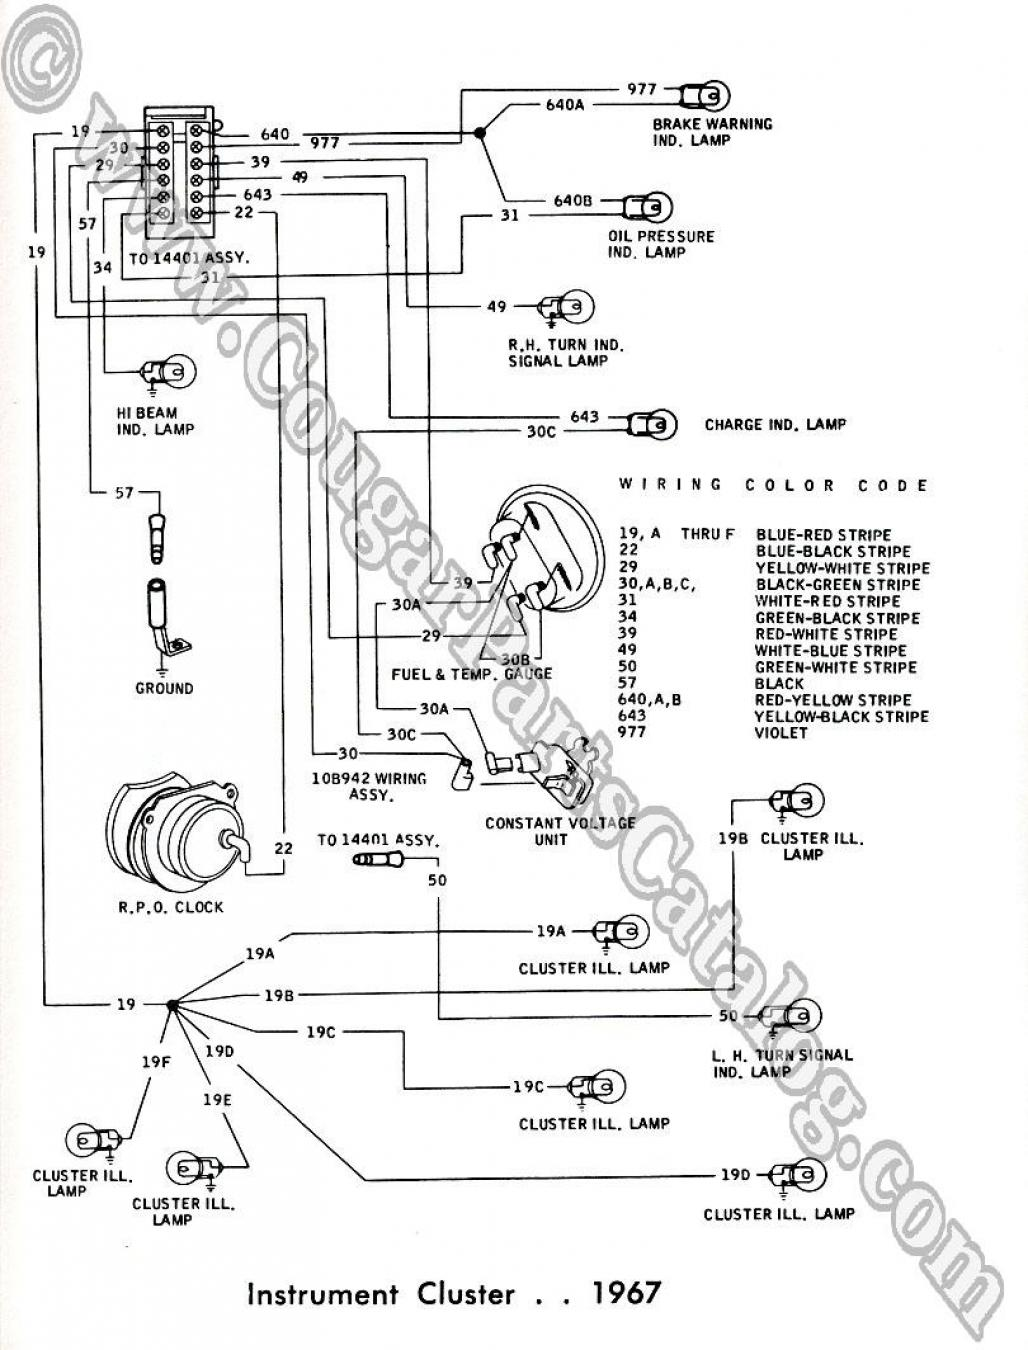 manual - wiring diagram